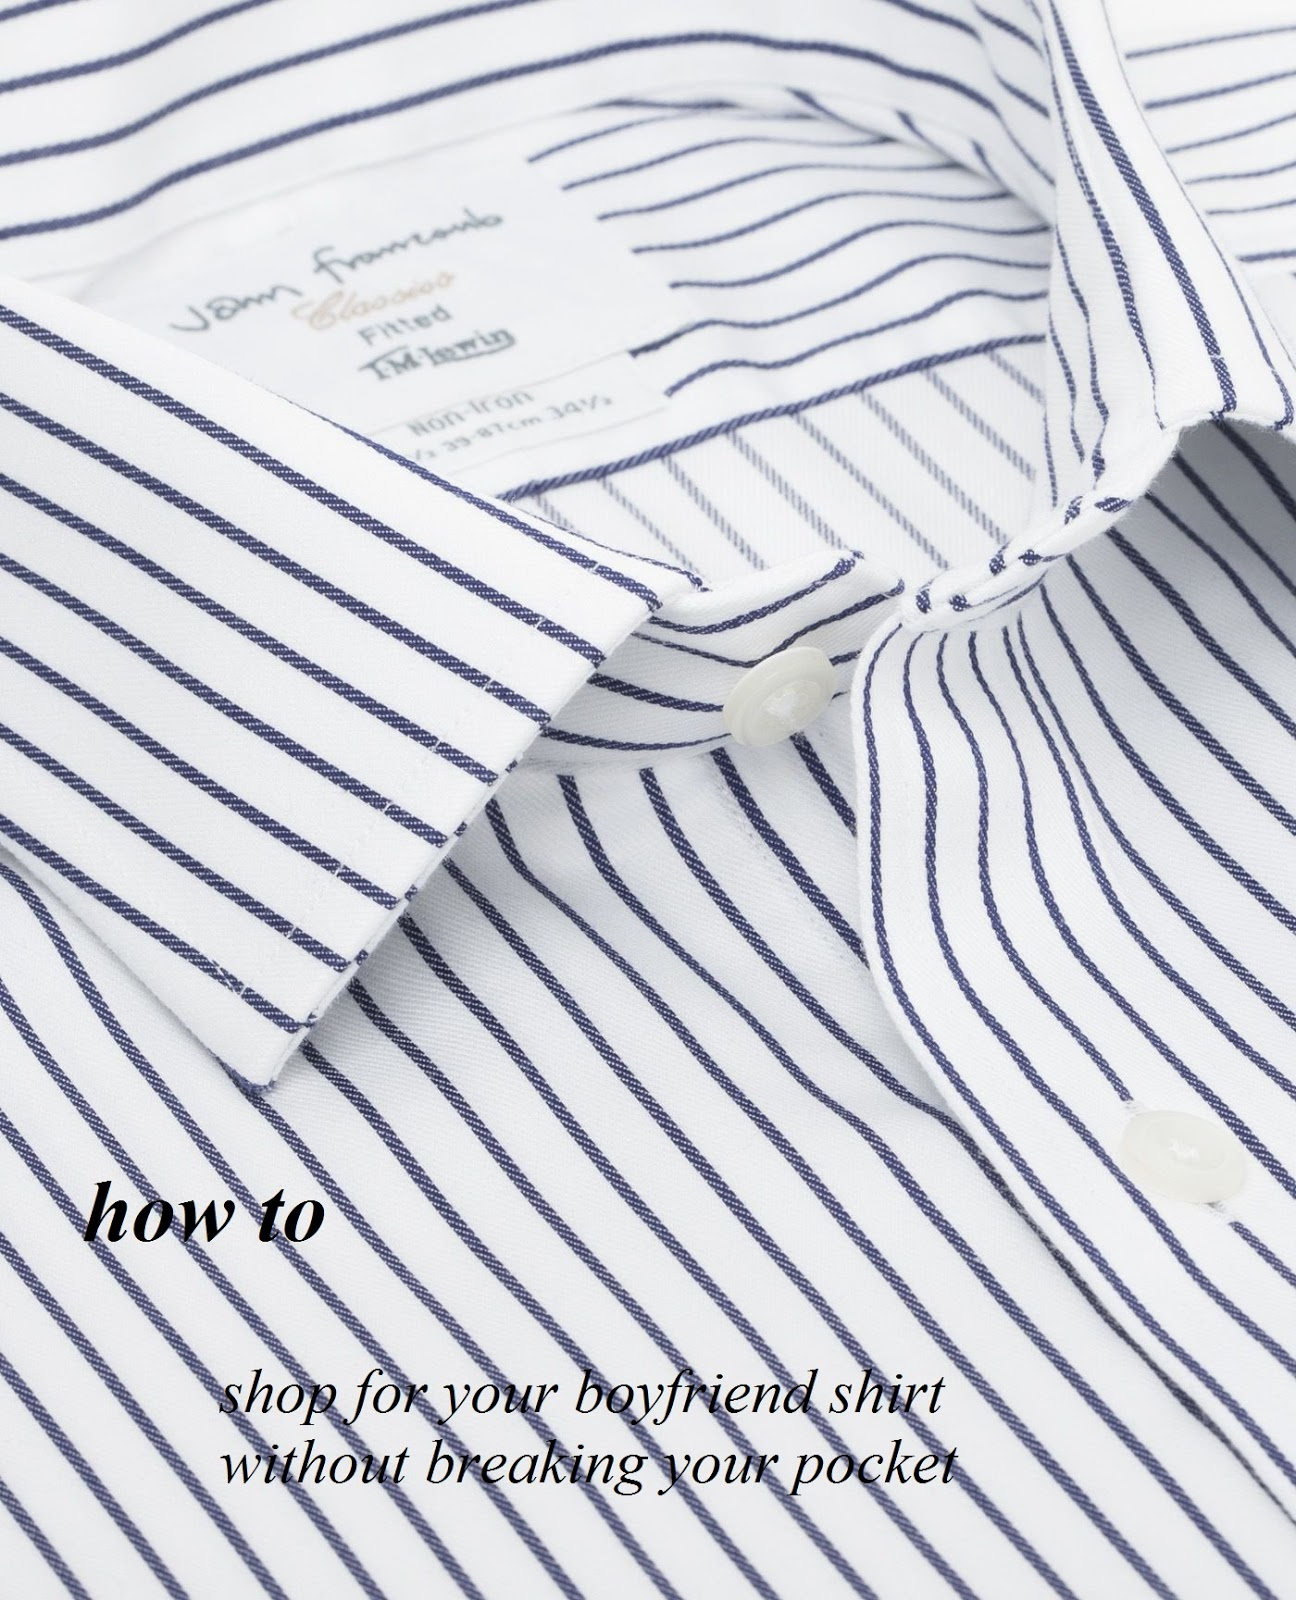 HOW TO MAKE YOUR OWN BOYFRIEND SHIRT